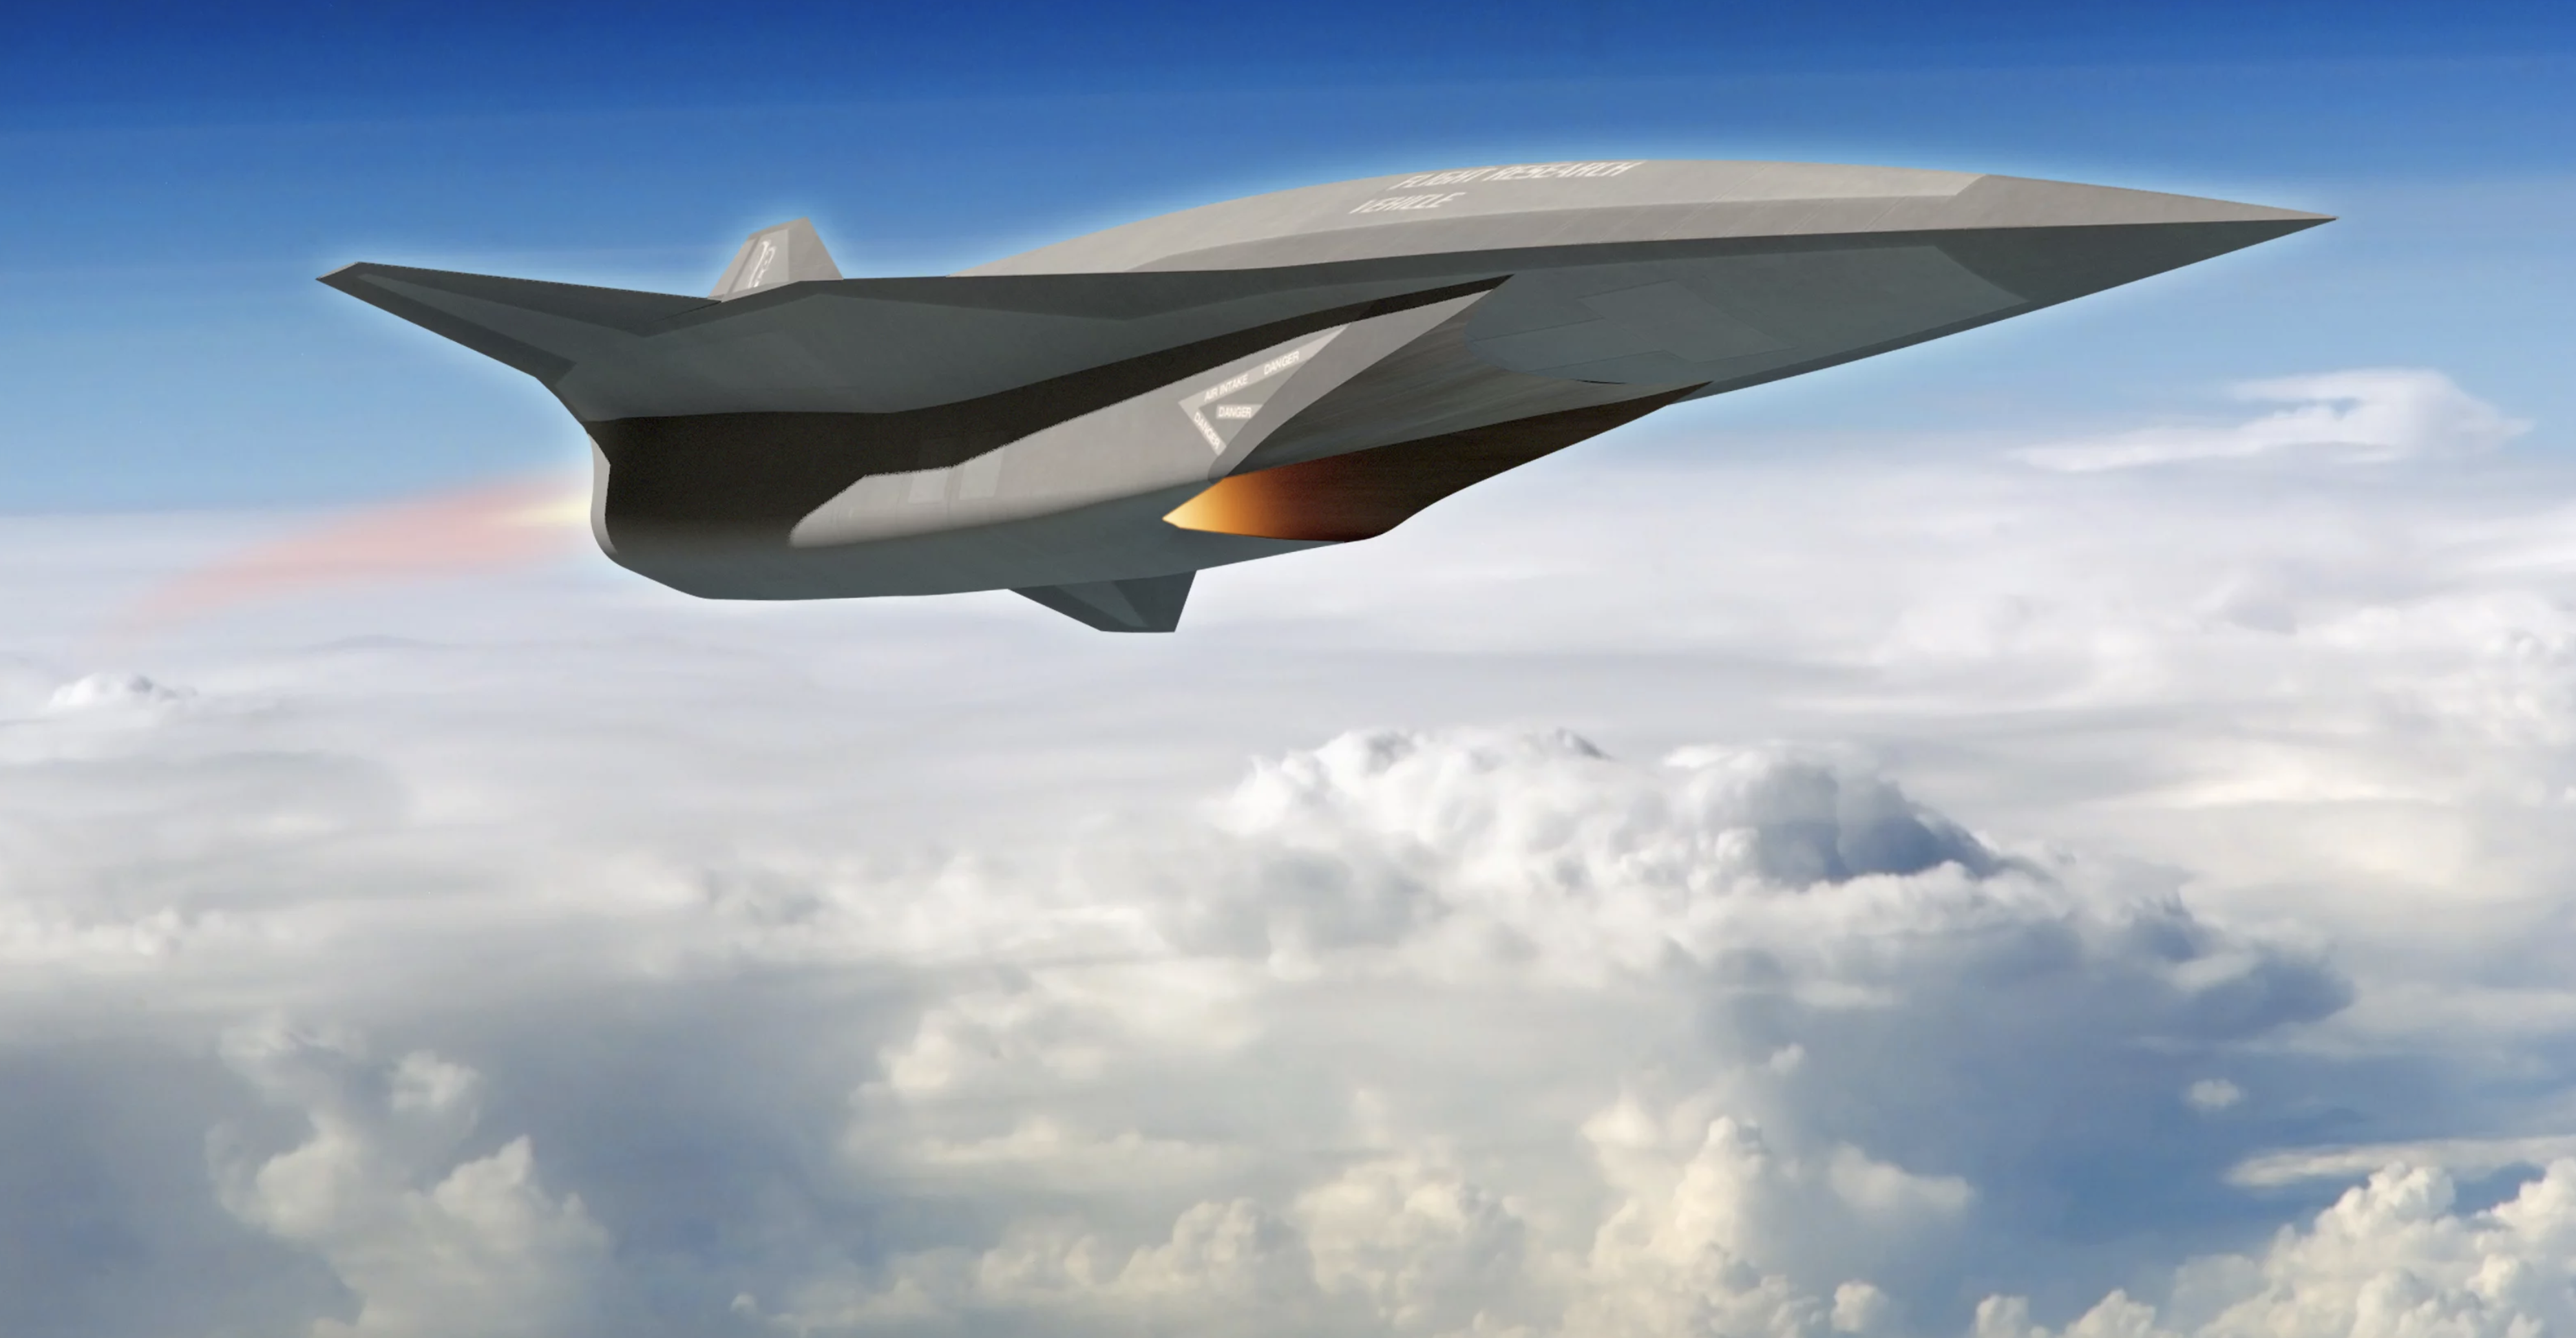 Faster: Meet the Air Force's New Mach 5 SR-72 Spy Plane